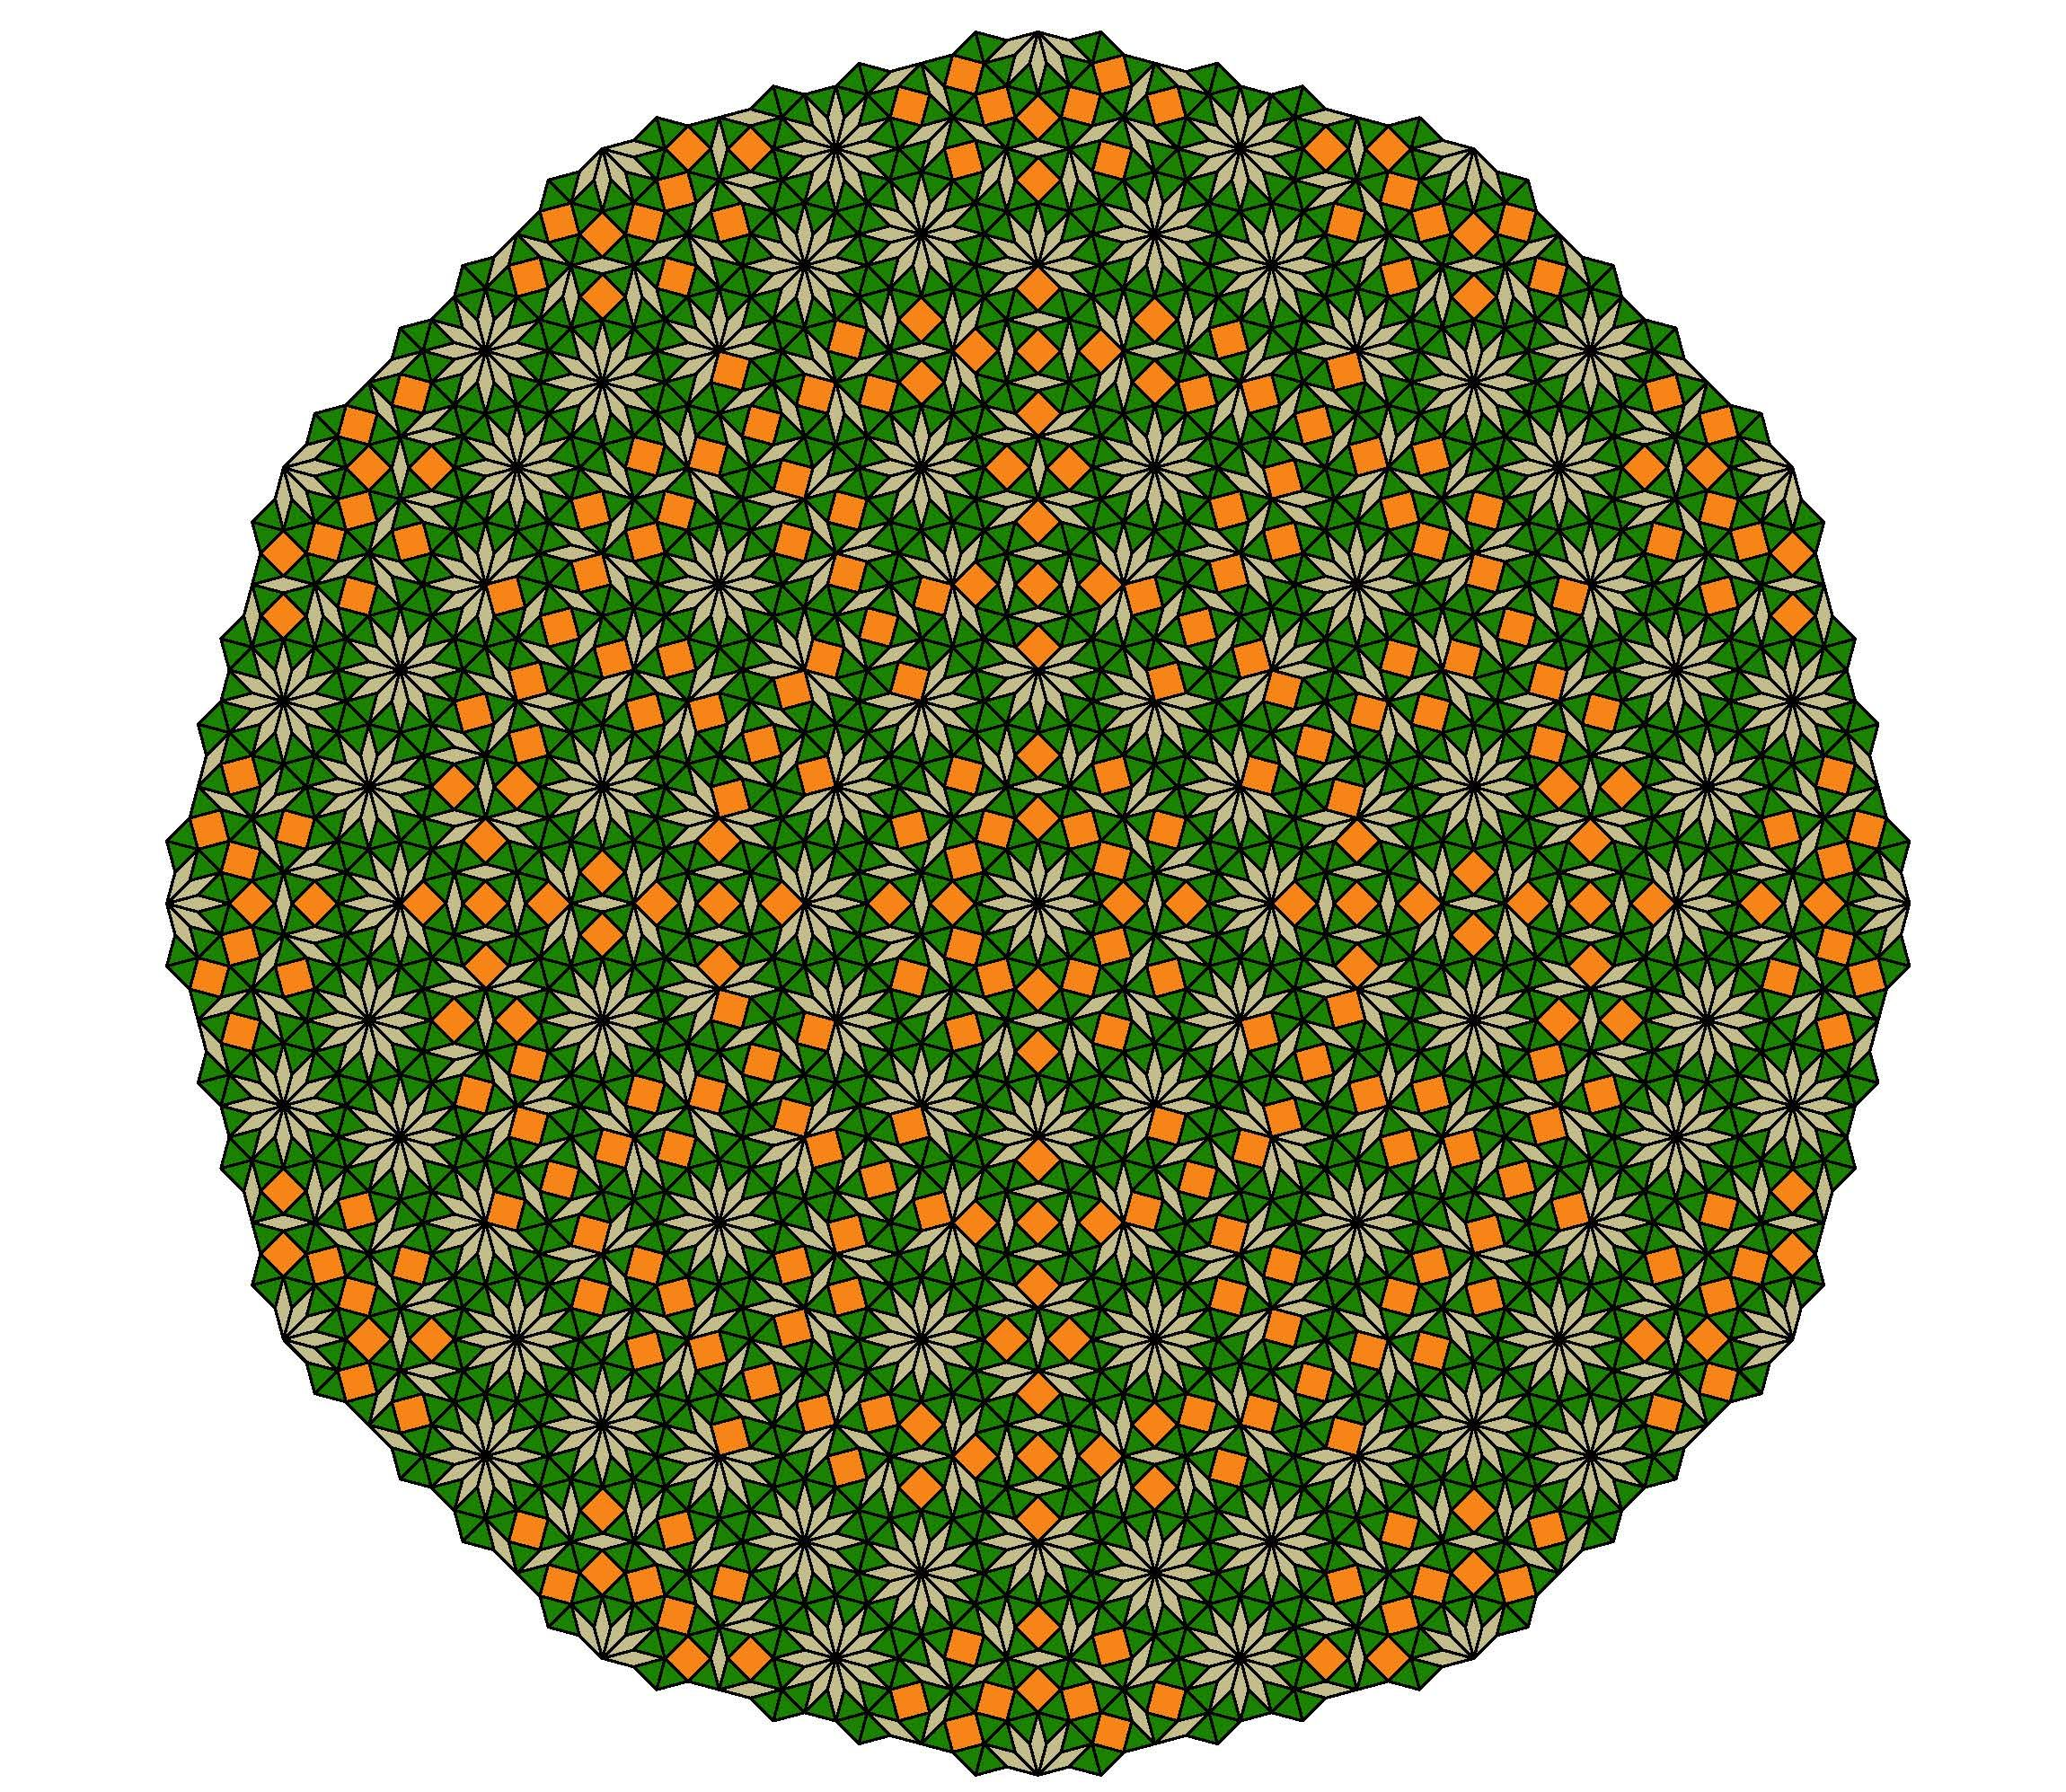 Mandala from the fourth simple nonperiodic tiling using pattern mandala from the fourth simple nonperiodic tiling using pattern blocks inflation level 2 dailygadgetfo Image collections